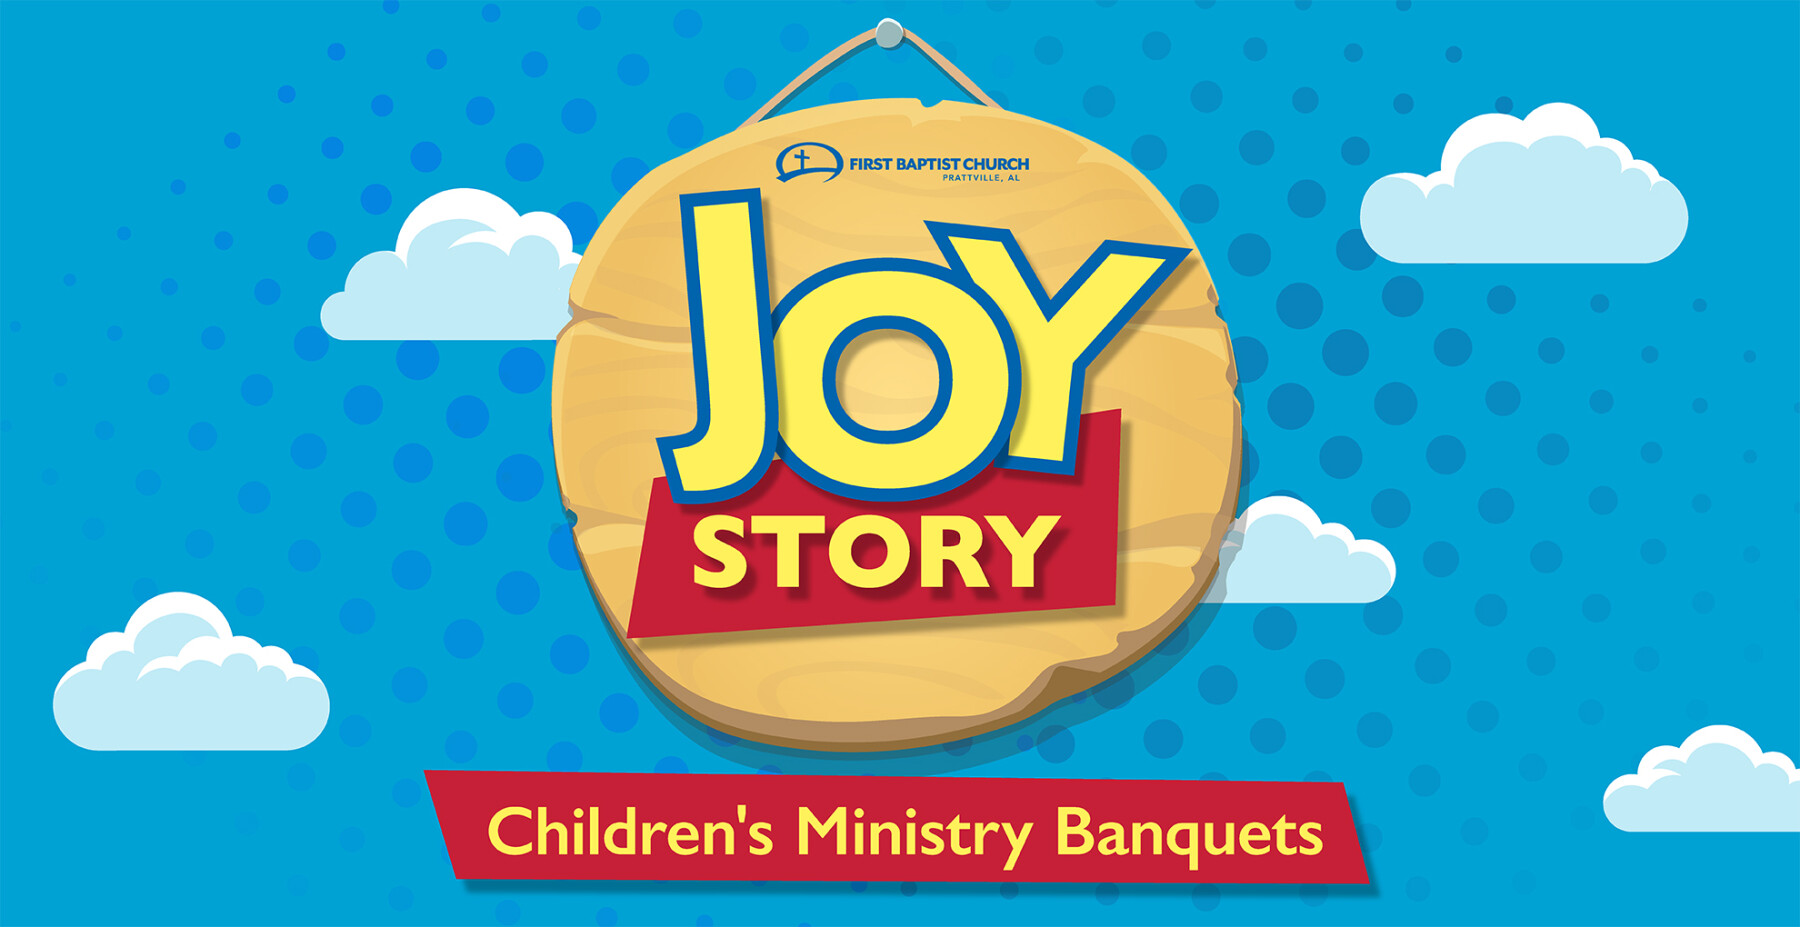 Joy Story: Children's Ministry Banquets